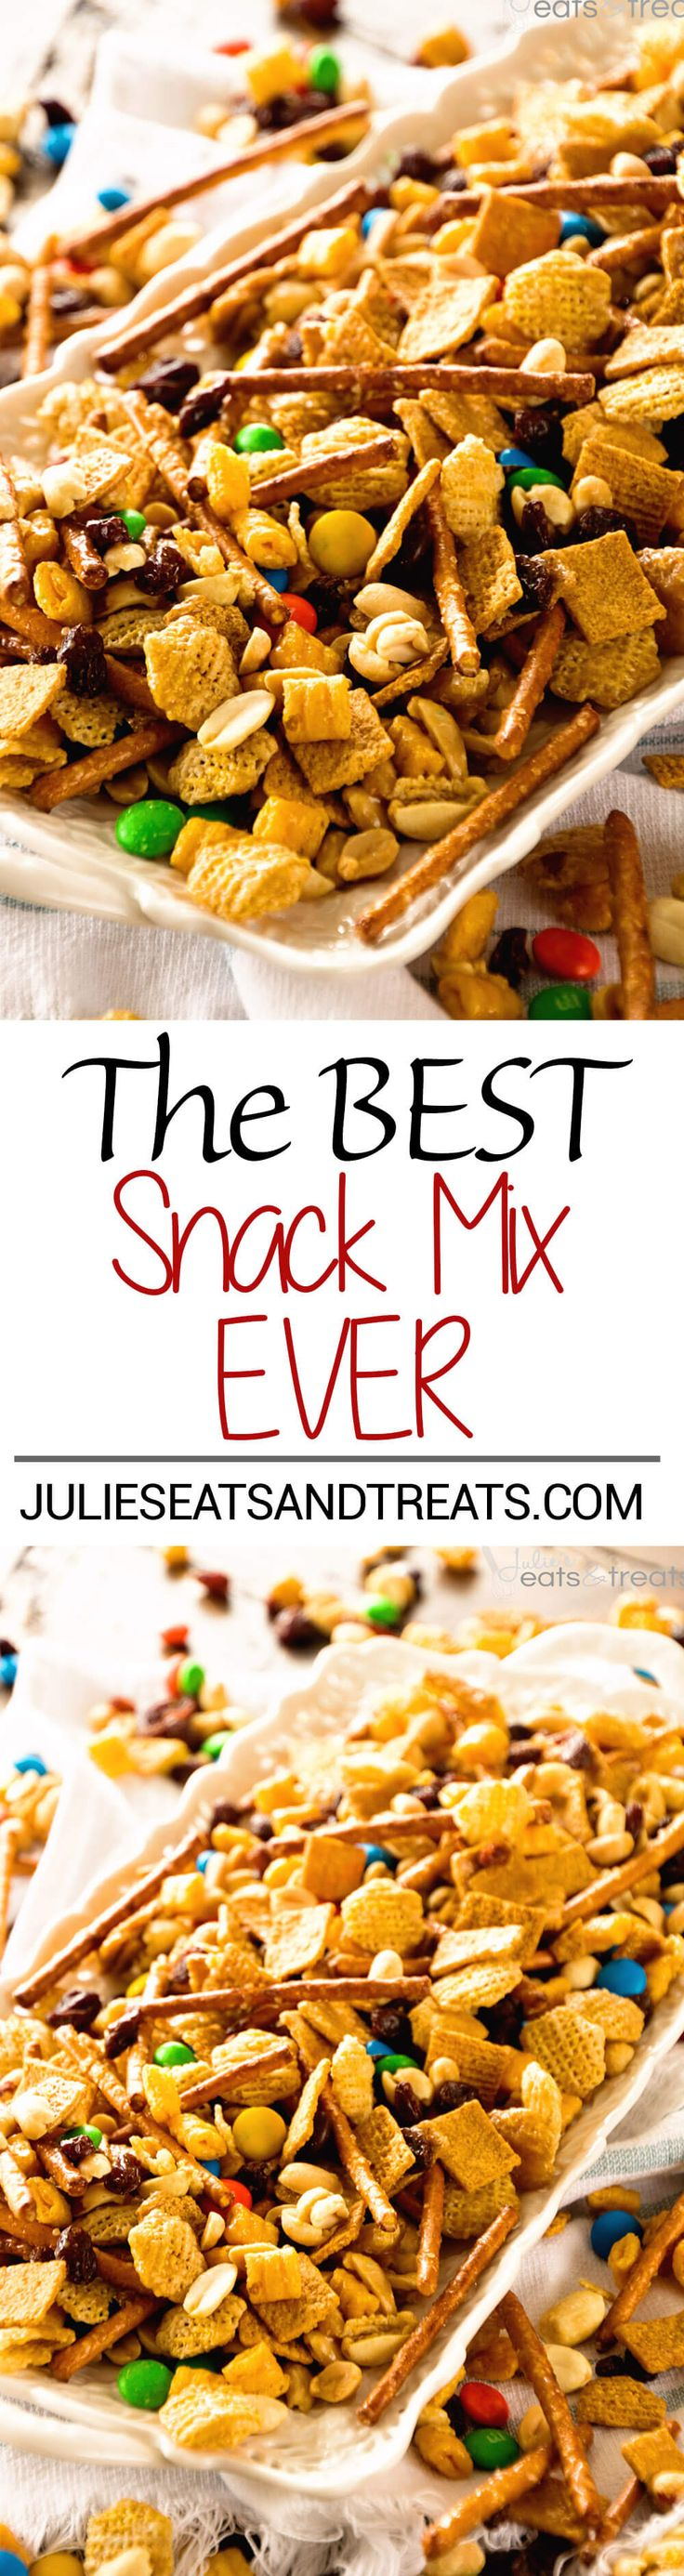 Snack Mix ~ This Snack Mix is like CRACK! So Addictive and Delicious! Full of Cereal, Pretzels, Peanuts, M&Ms and Raisins! Perfect for Christmas and Holiday Parties! ~ http://www.julieseatsandtreats.com